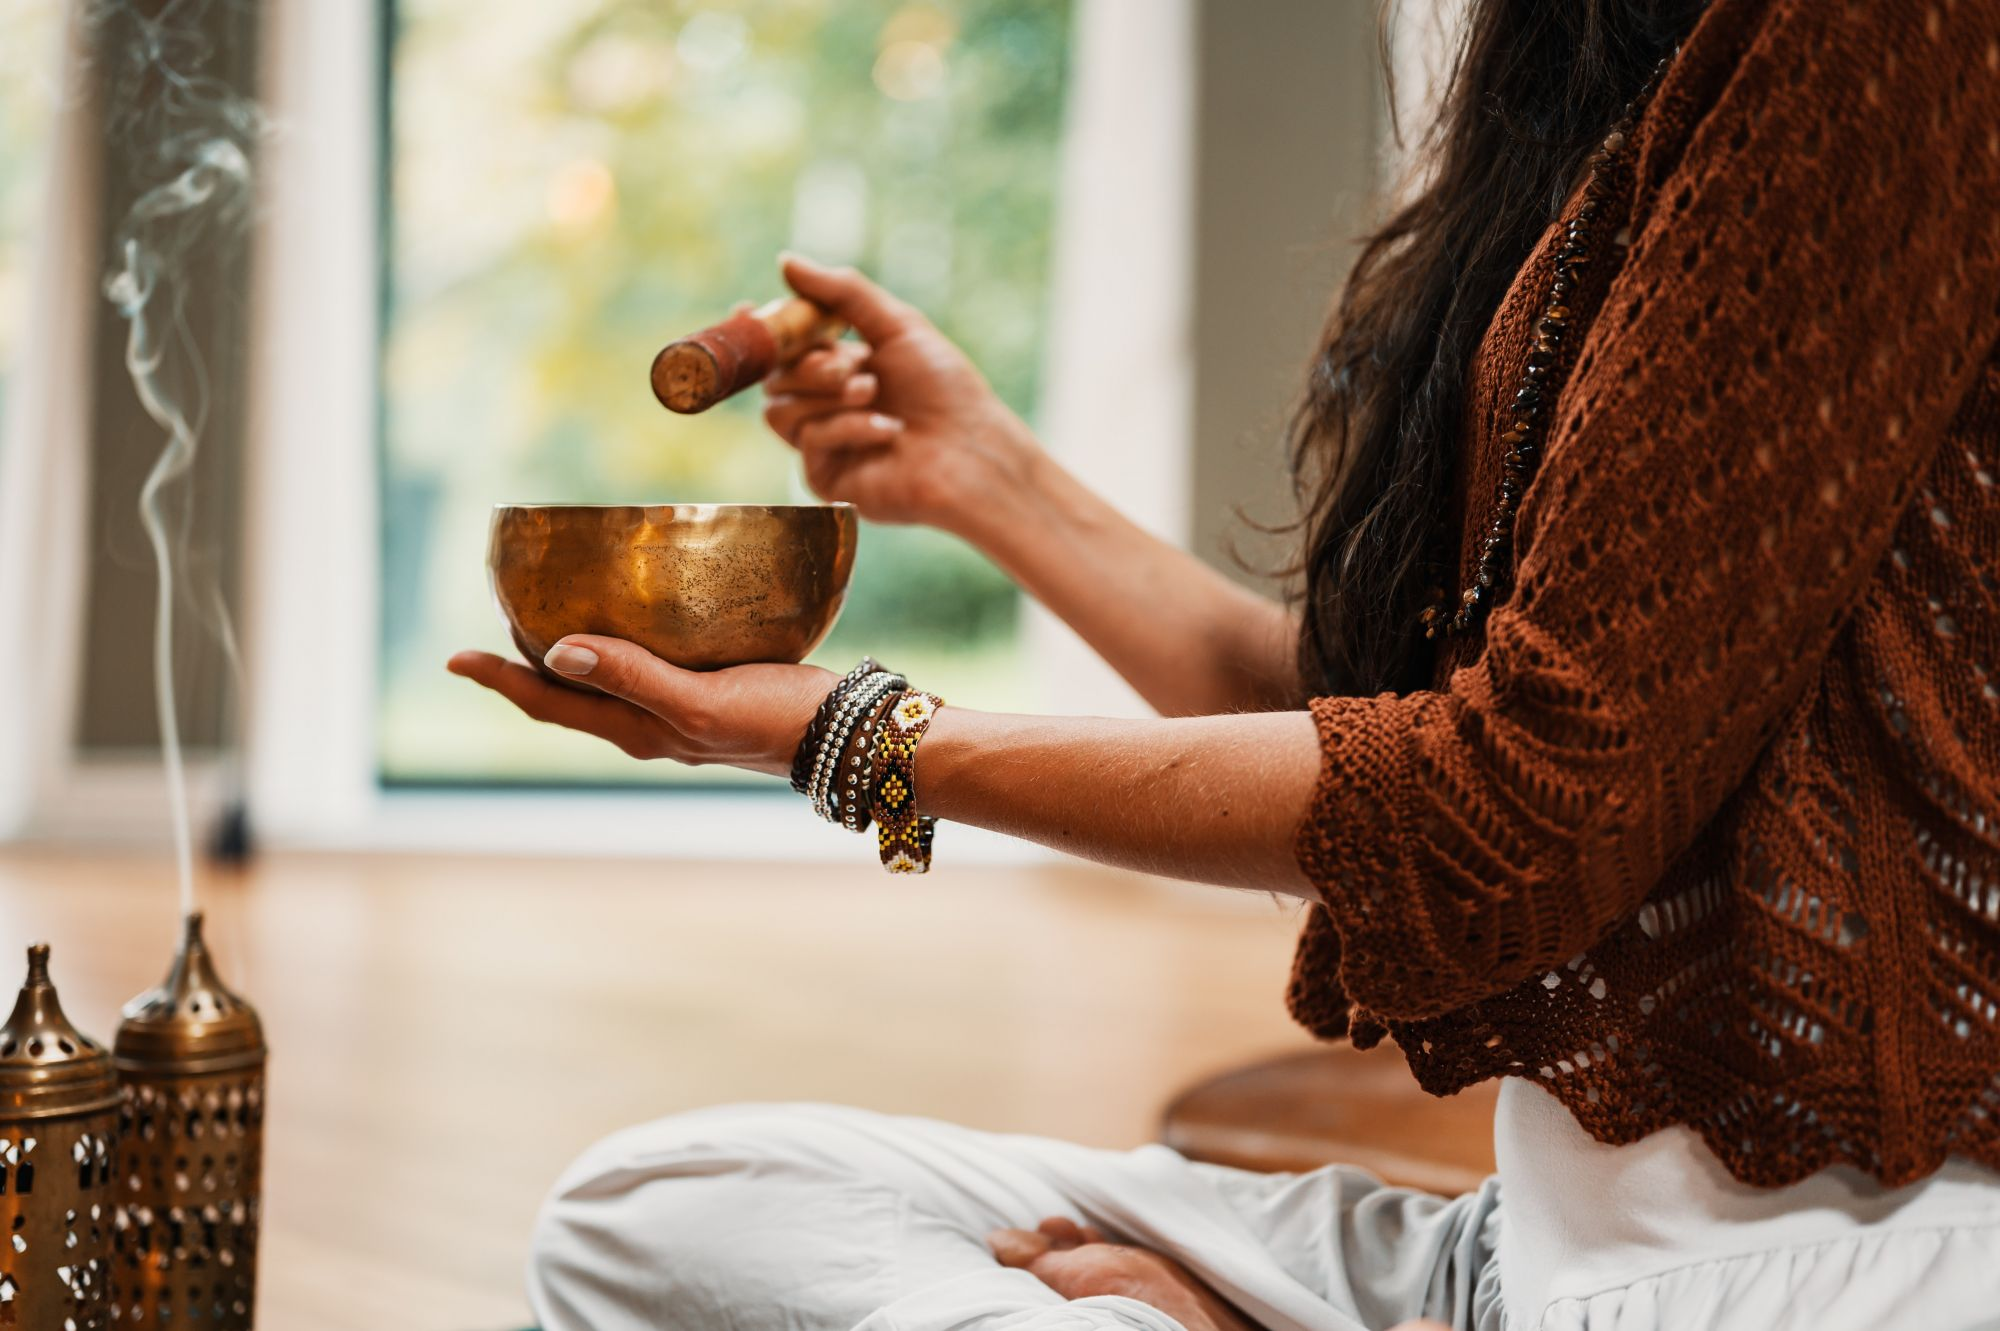 Getting Into Meditation? Here Are Some Tips On How To Build Your Own Meditation Space At Home